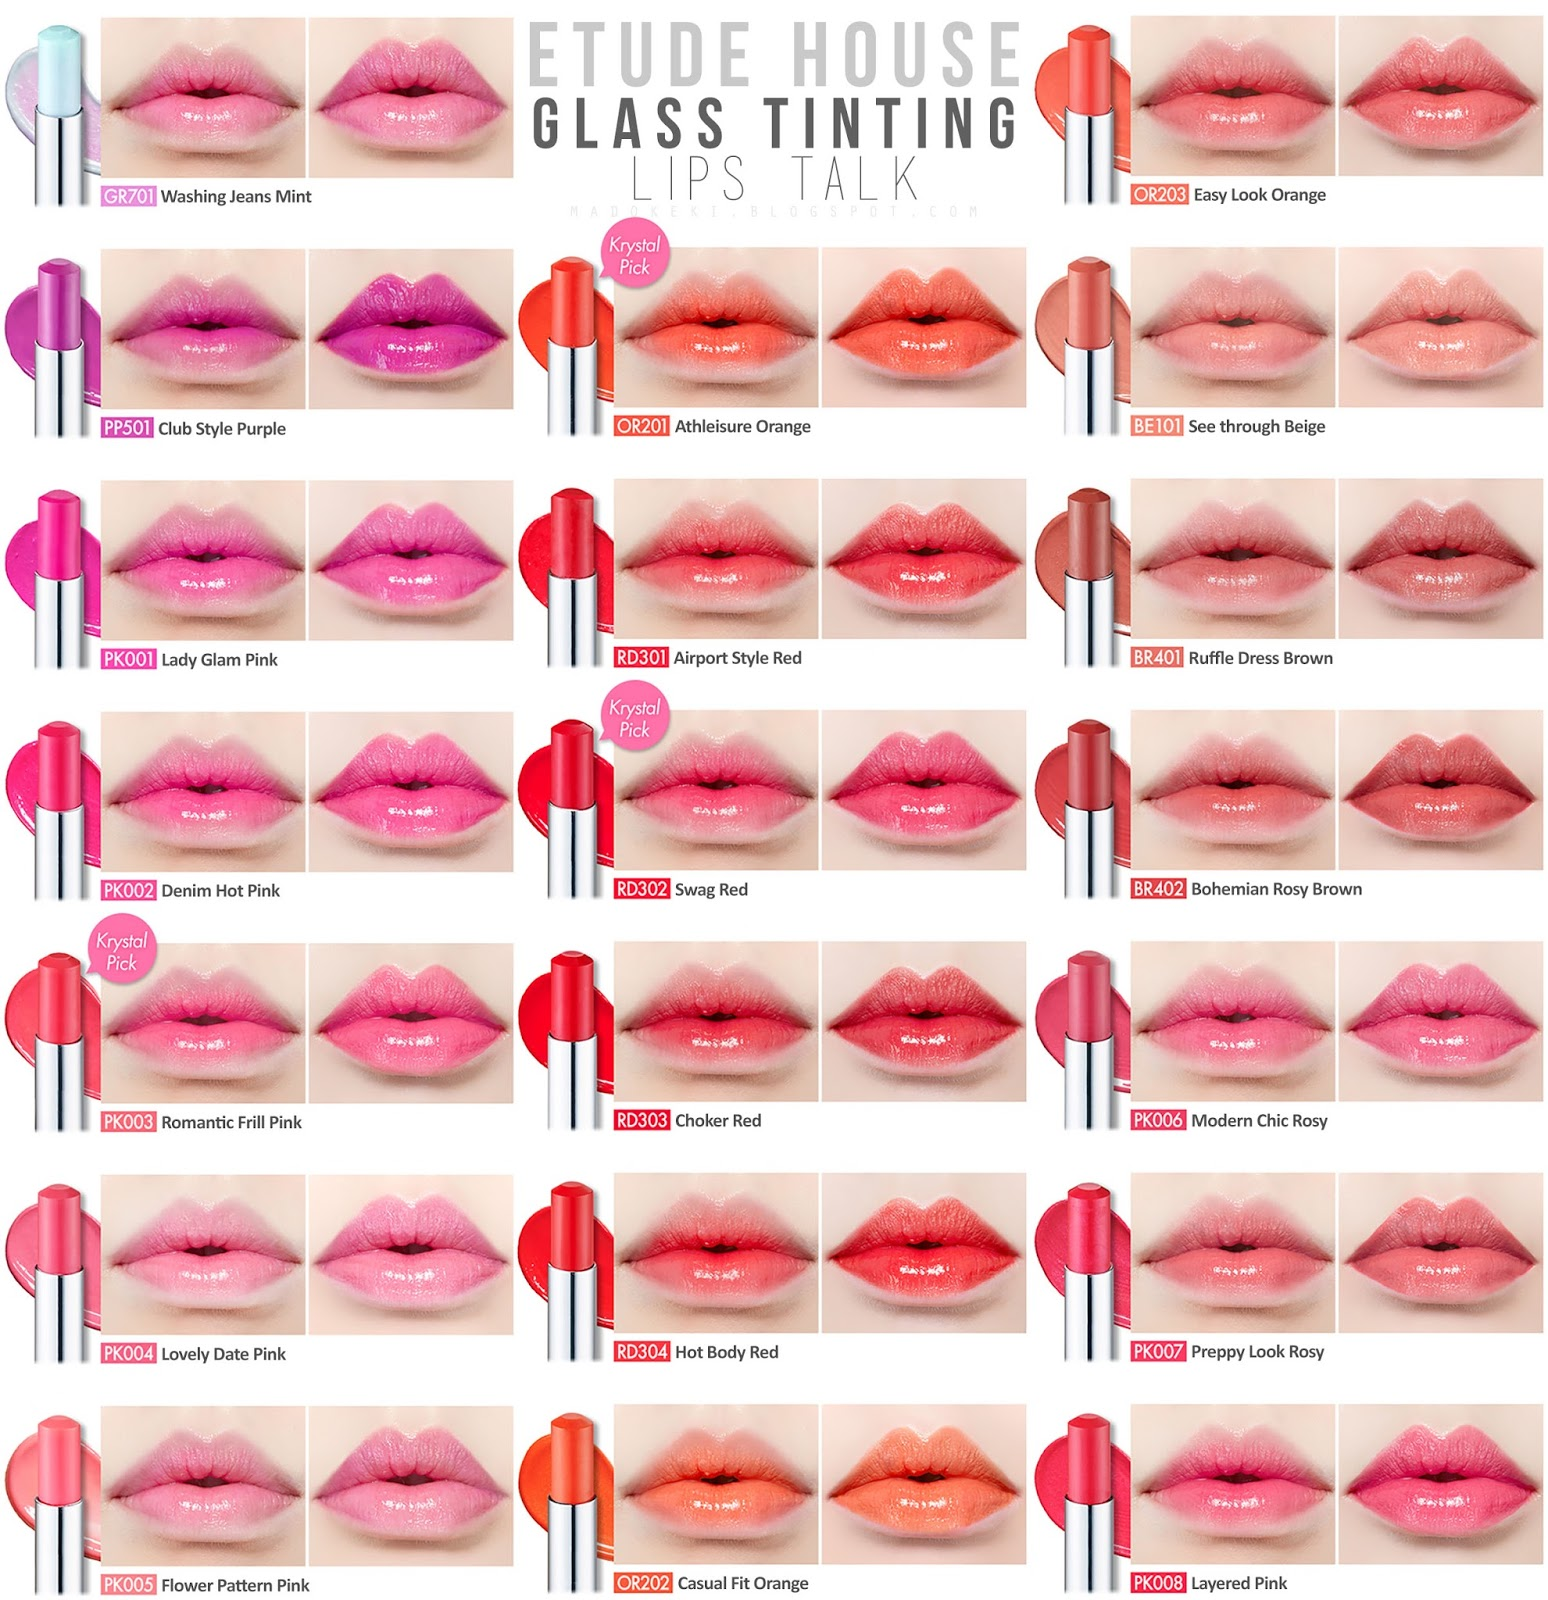 Dear My Glass Tinting Lips Talk - Color